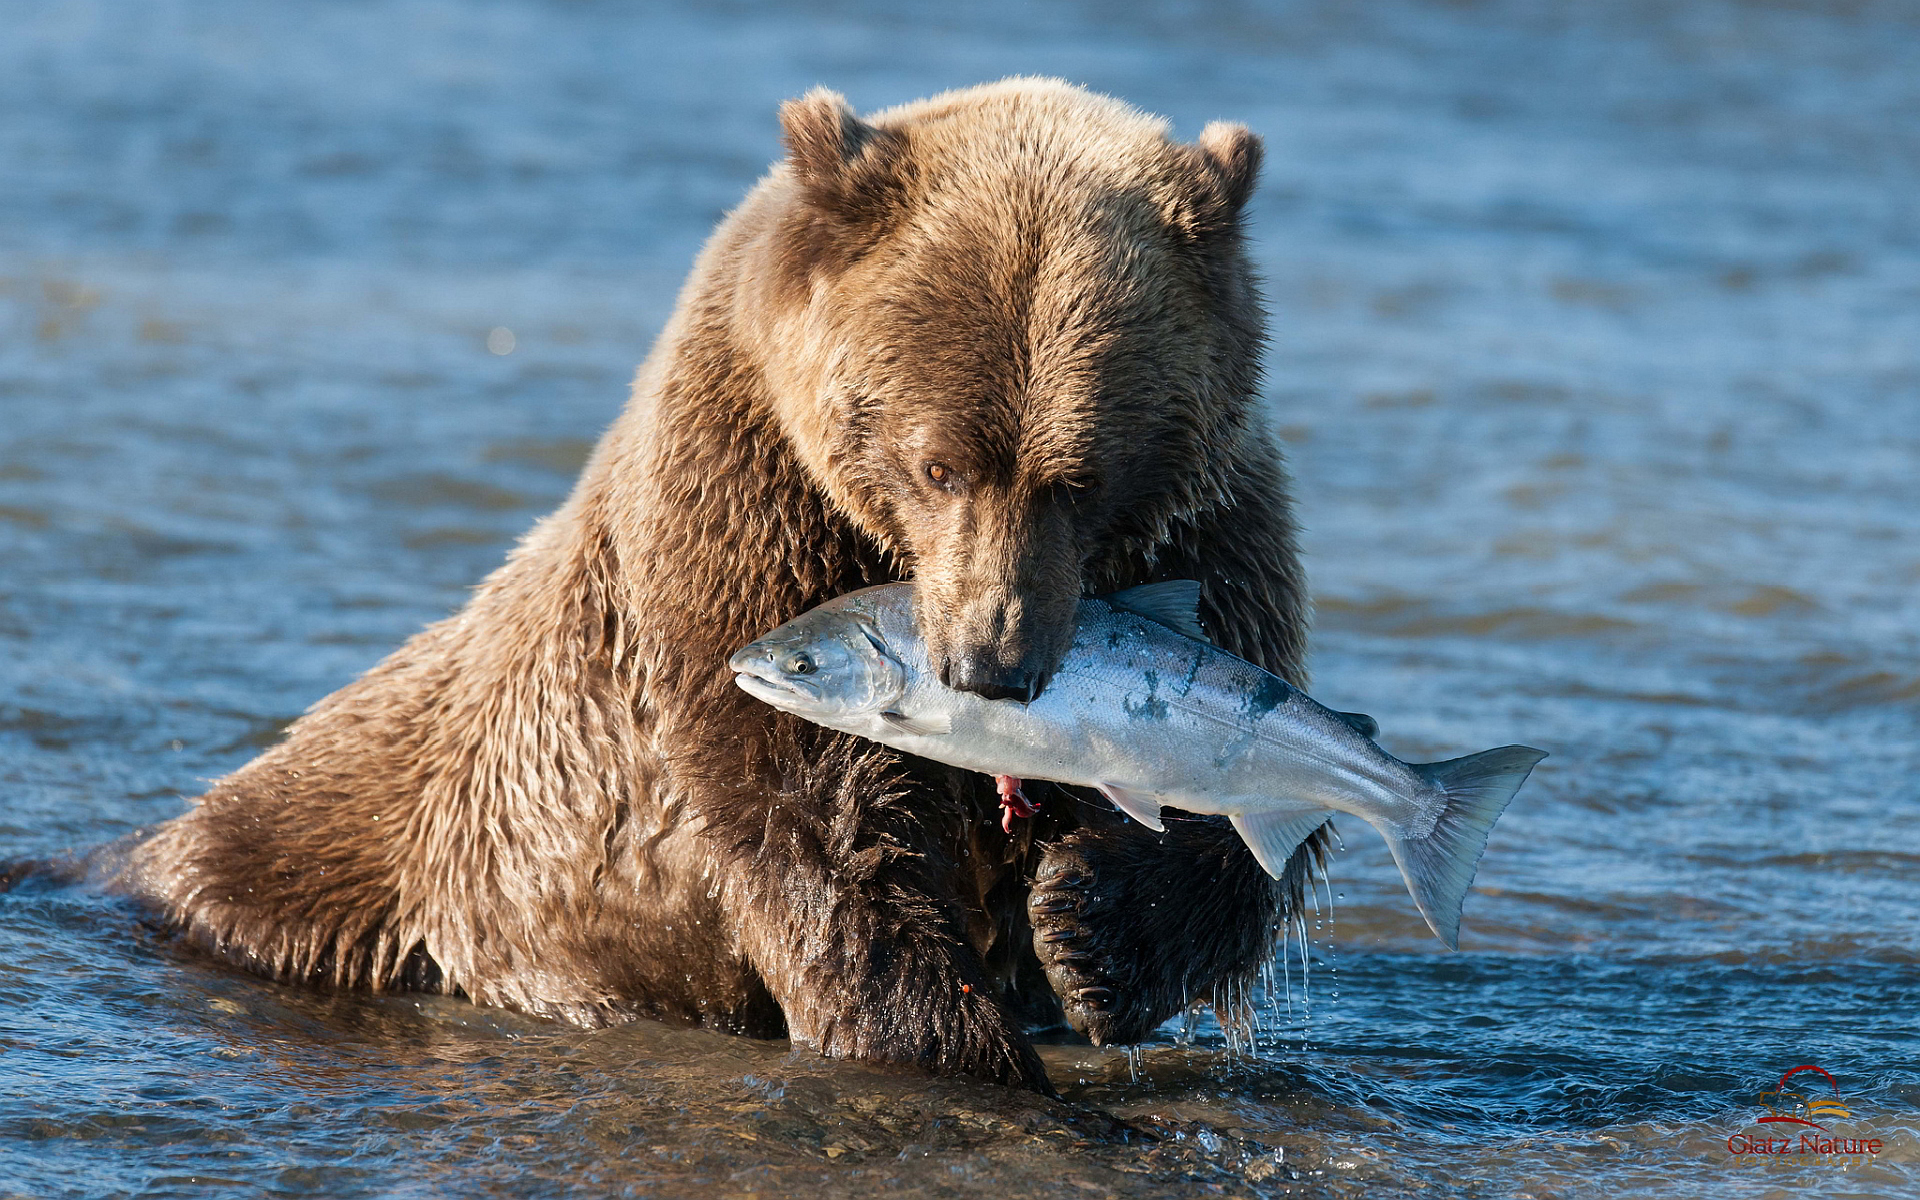 bear hunting fish hd desktop wallpapers 4k hd